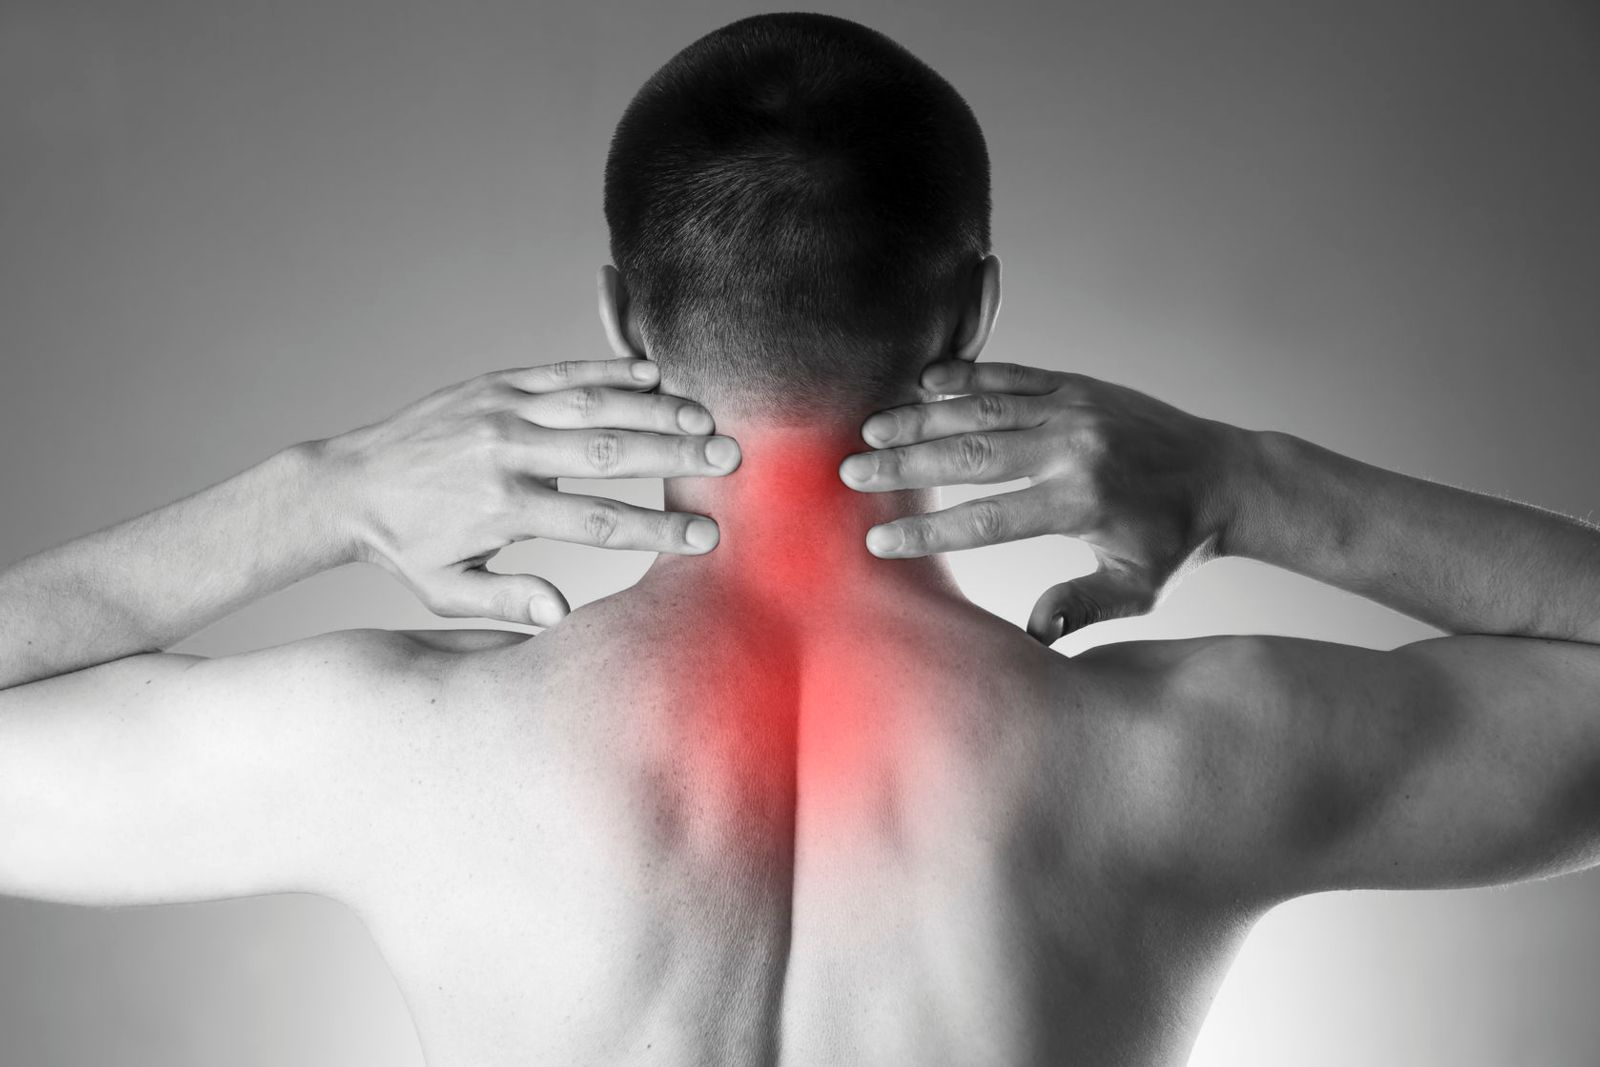 neck pain whiplash accident injury